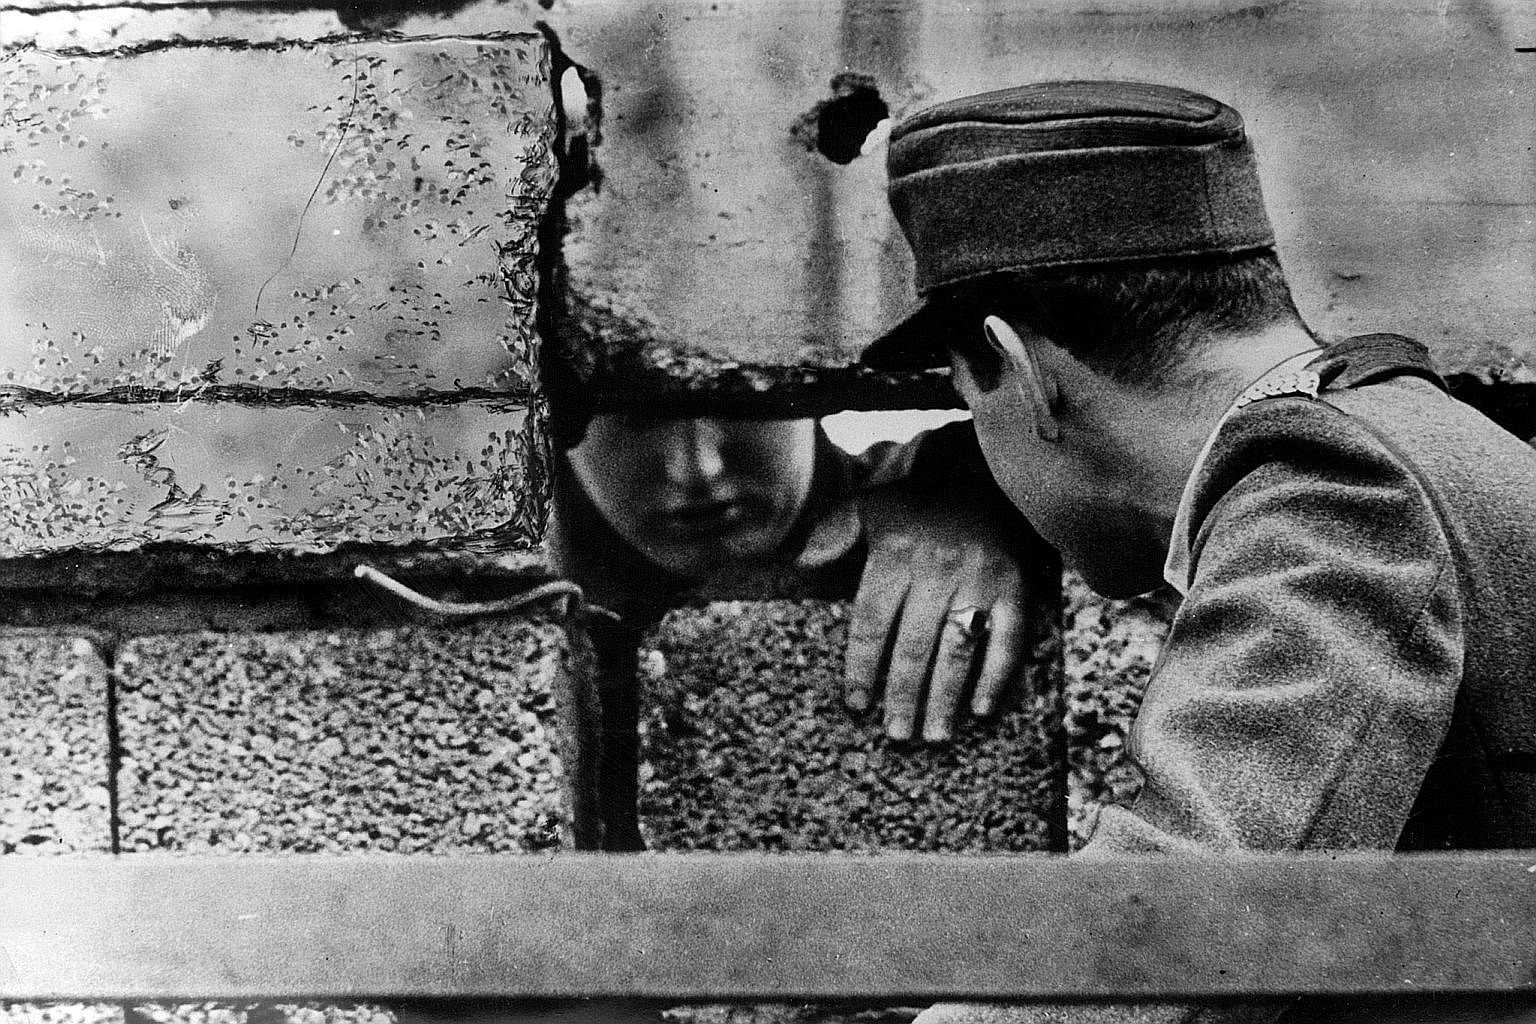 This image of the turbulent Konfrontasi period was captured in 1965 by veteran cameraman Willie Phua. Two German policemen communicating through a gap in the Berlin Wall, which was built by the communists in 1961. The spread of communism was one of t